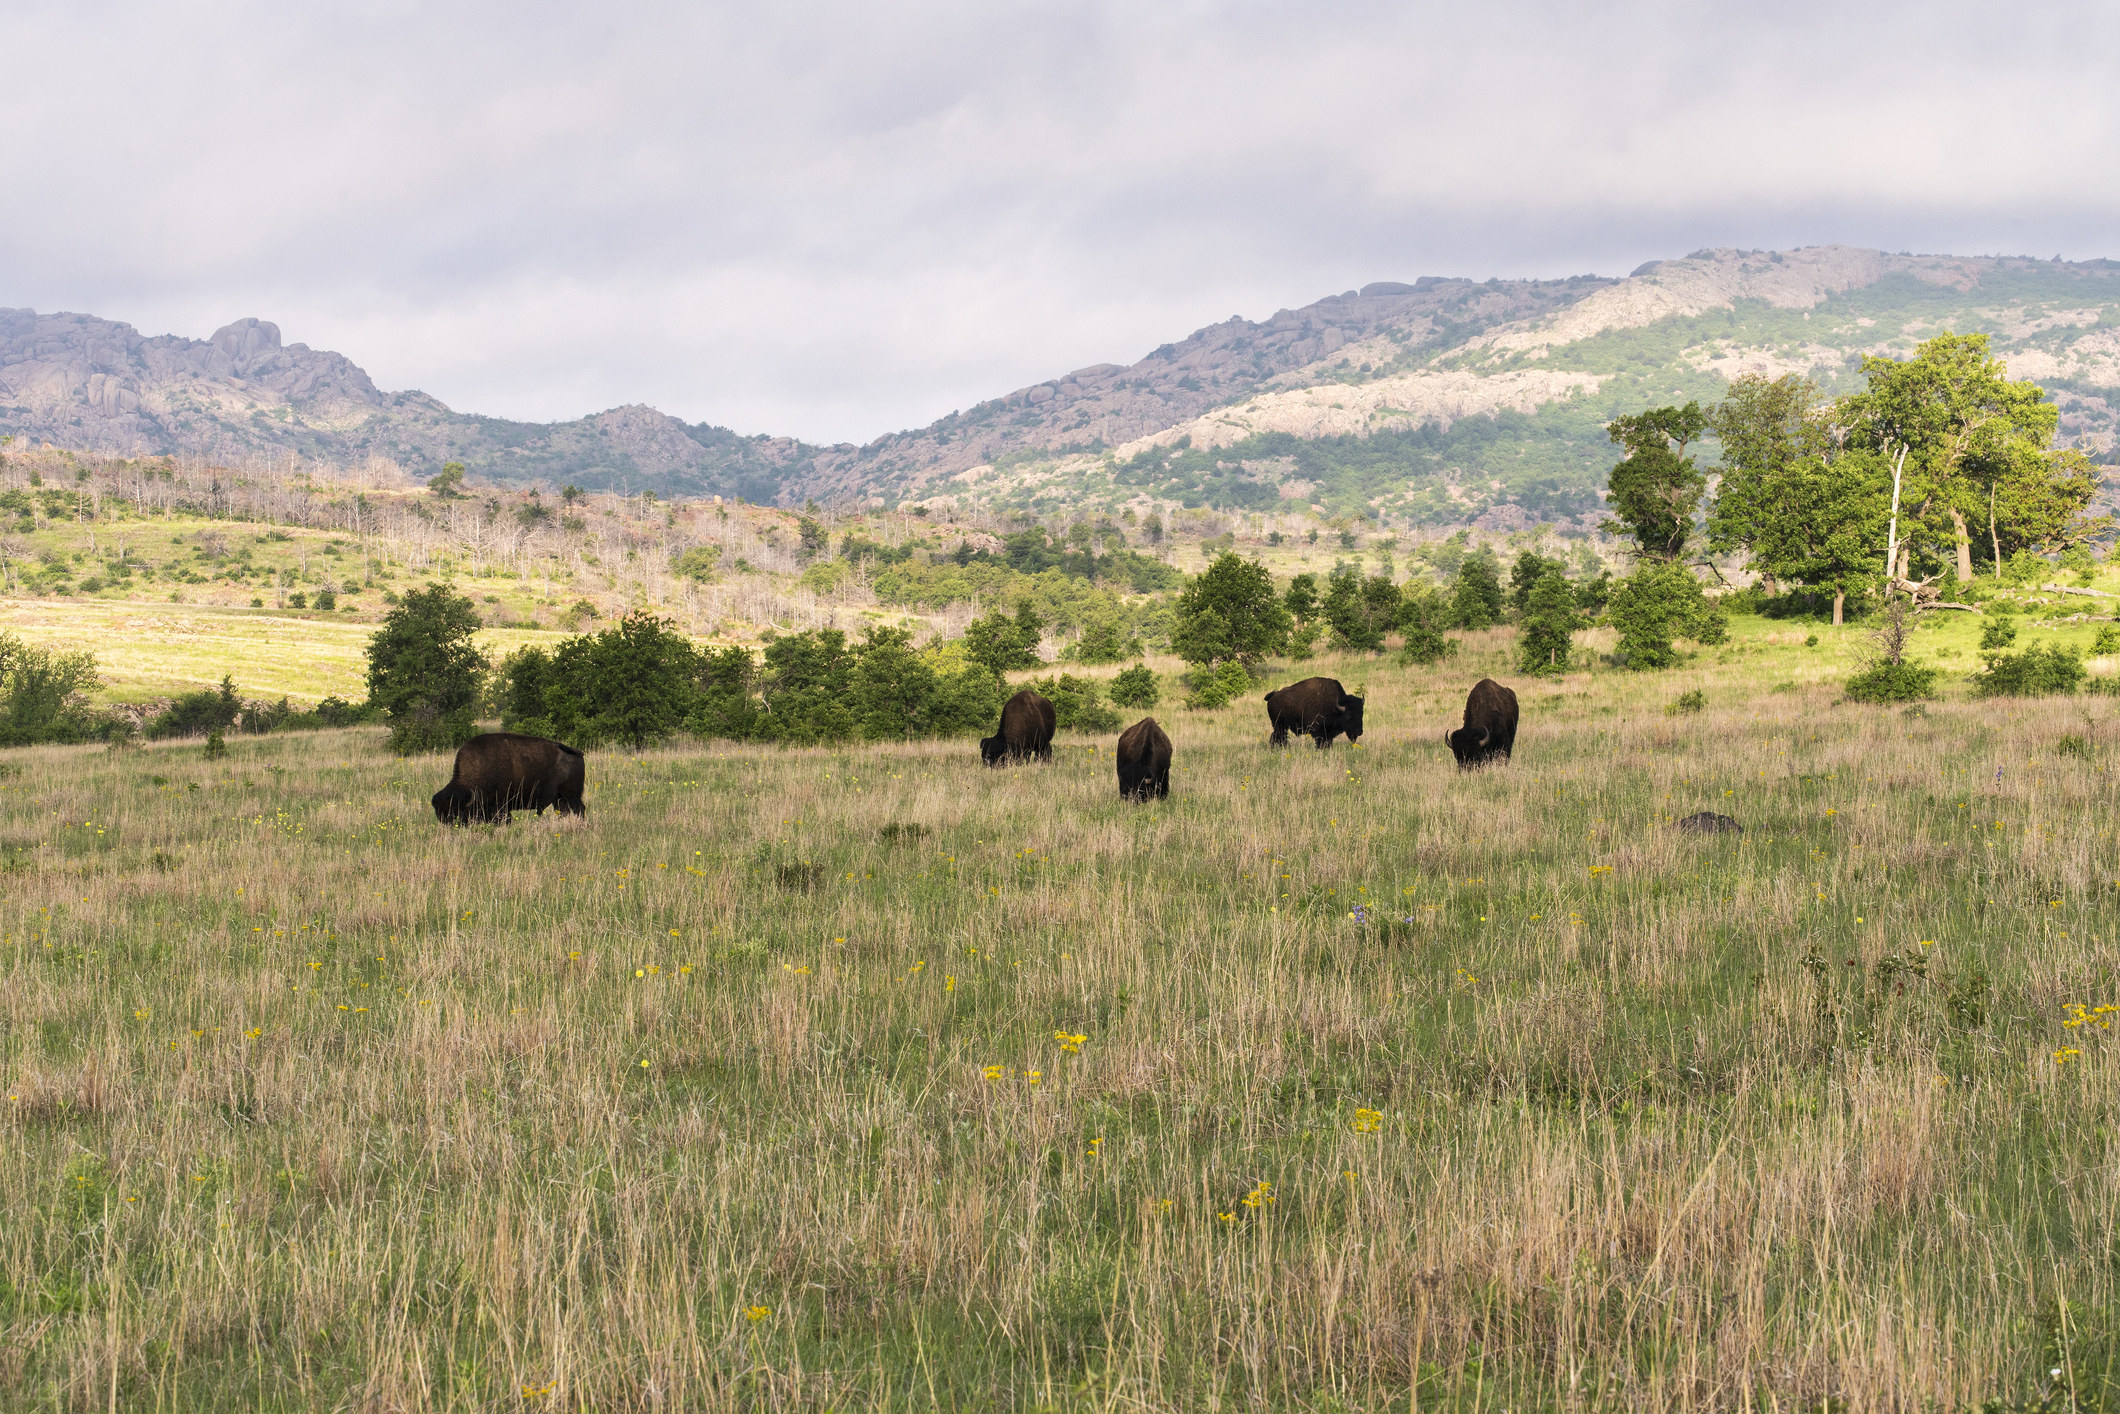 Bison grazing in a field with long grass at the Wichita Mountains National Wildlife Refuge.